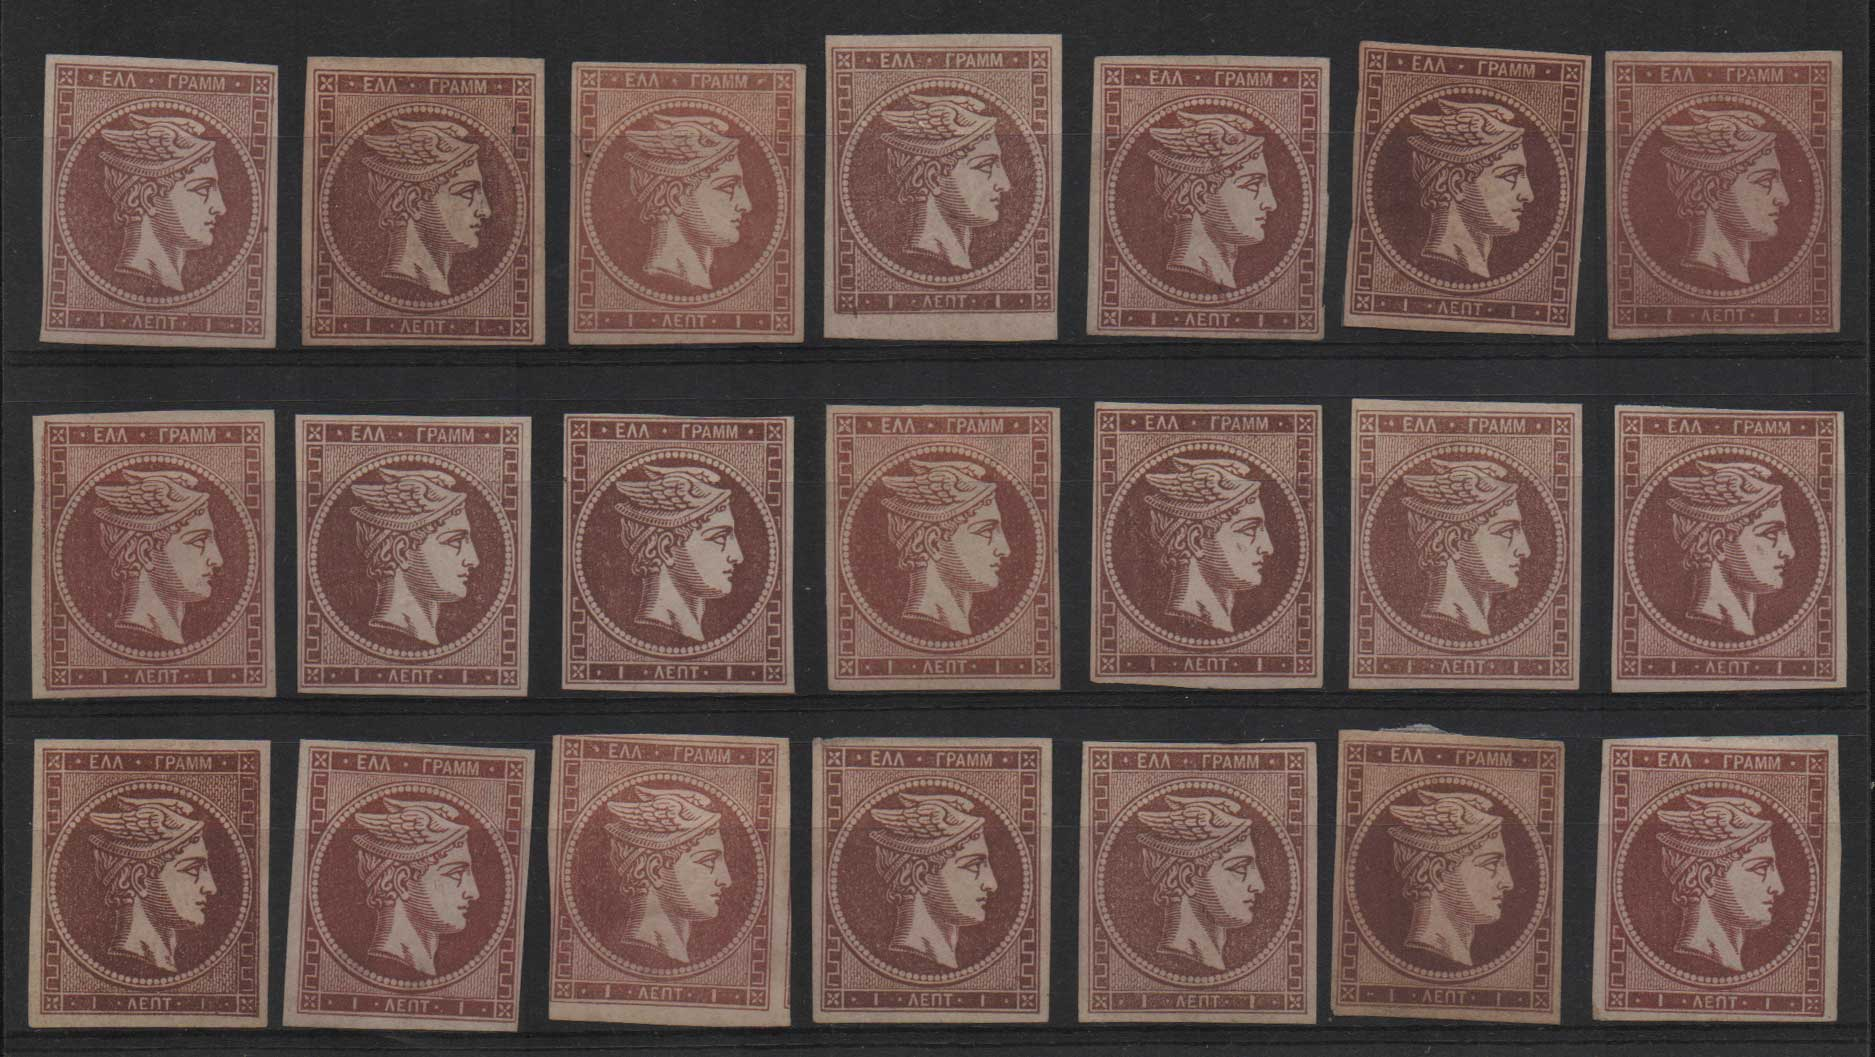 Lot 12 - -  LARGE HERMES HEAD large hermes head -  Athens Auctions Public Auction 72 General Stamp Sale